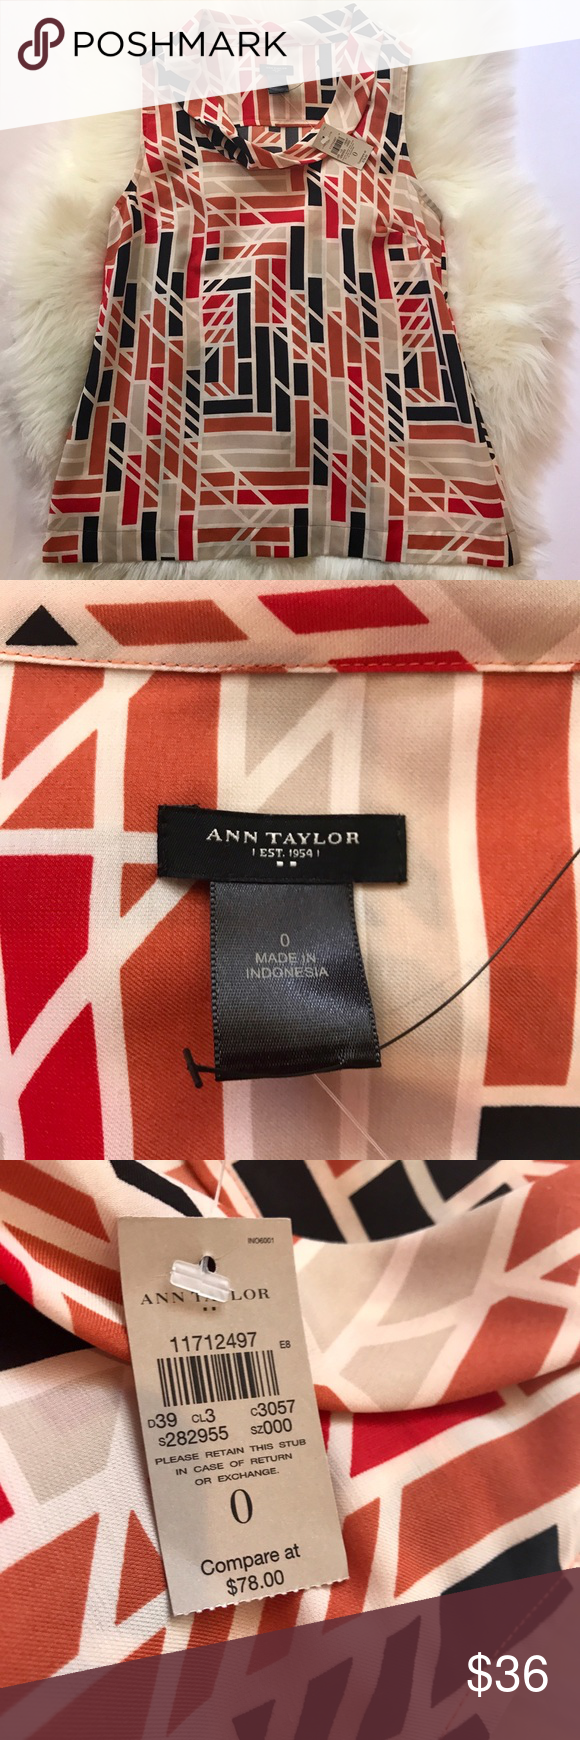 Ann Taylor Sleeveless Top Cute geometric pattern small Cowl neck detailing. 100% polyester feels thick and sturdy more like a cotton linen blend, goes with about anything NWT Size 0 Ann Taylor Tops